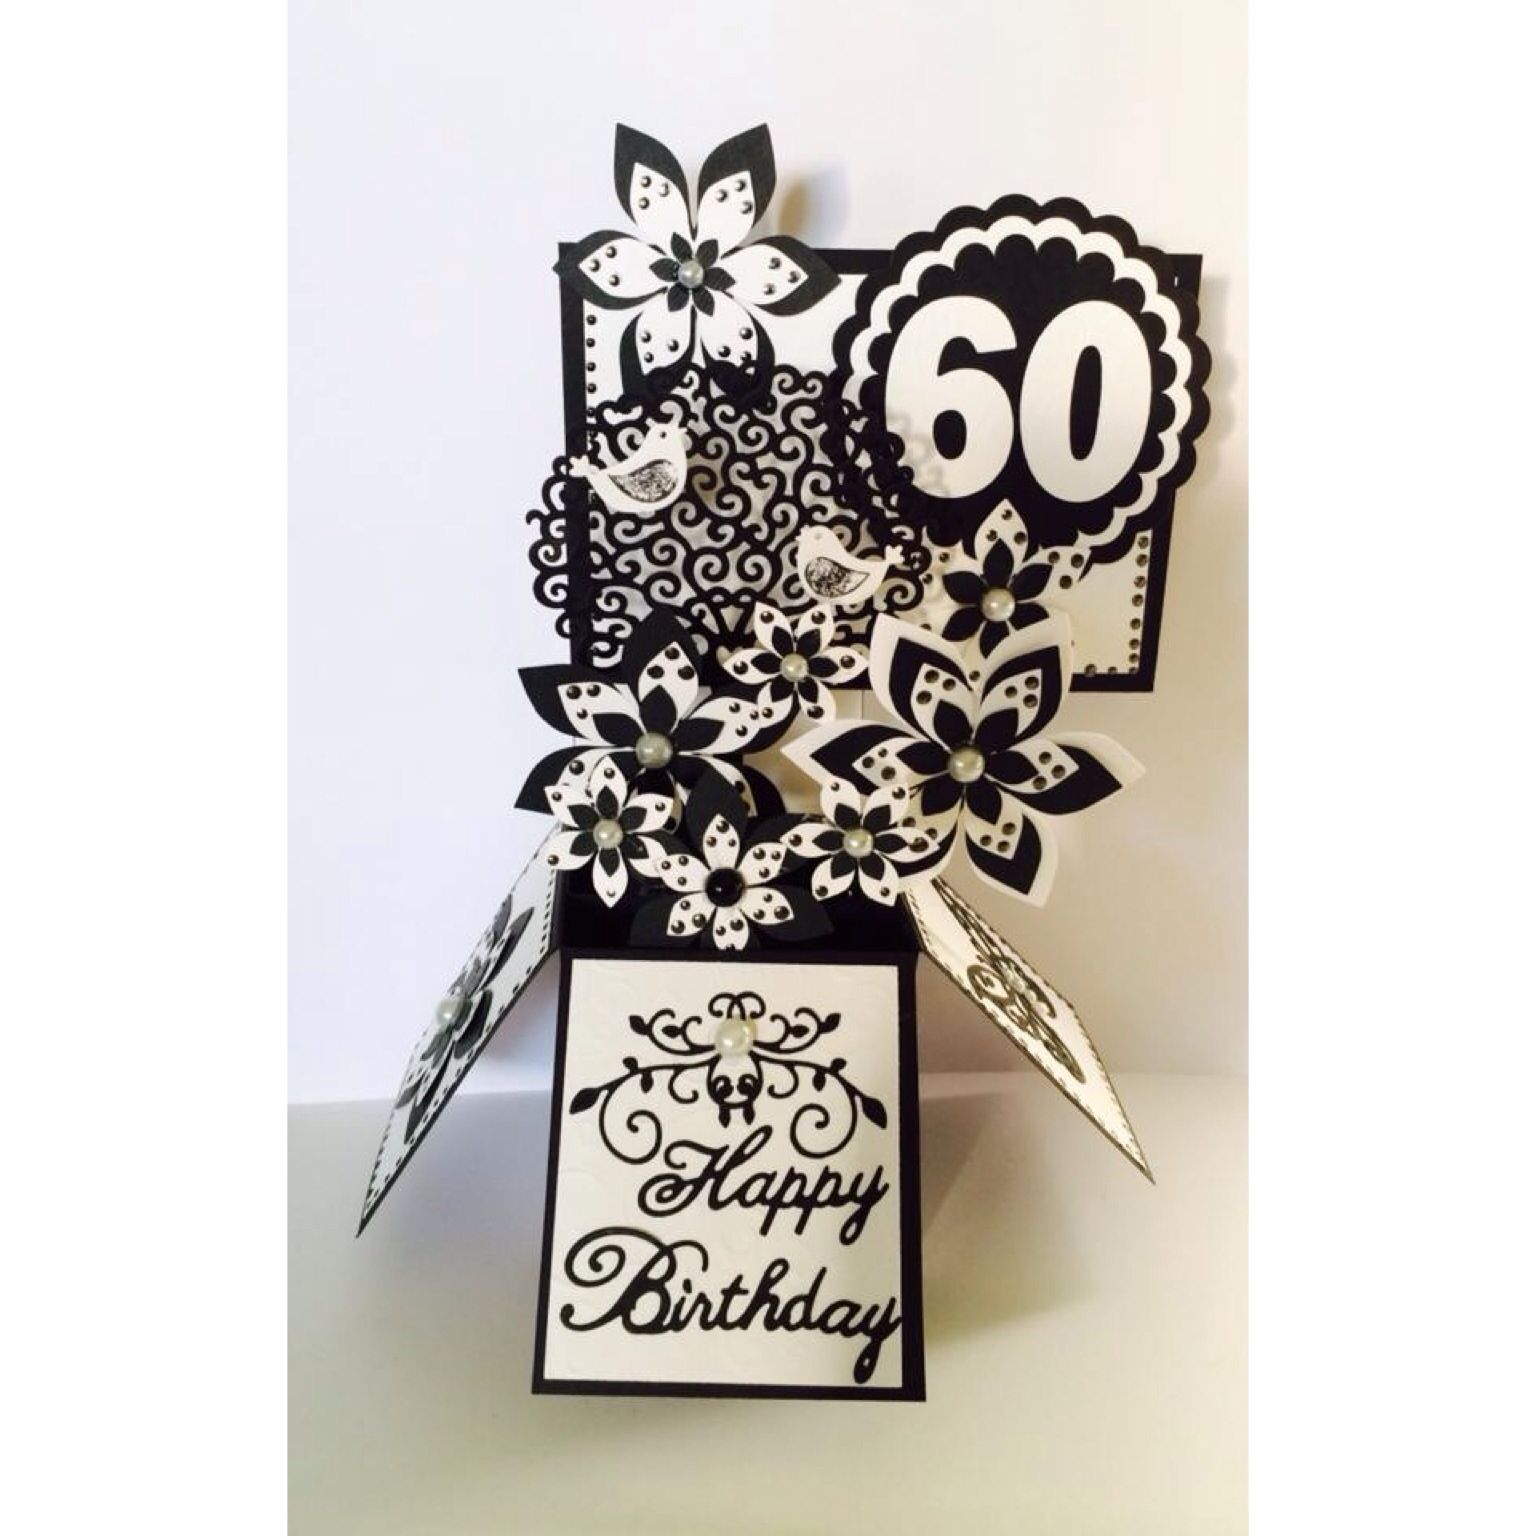 60th Birthday Card in a Box RellB The Creative Mum fb – Birthday Cards 60th